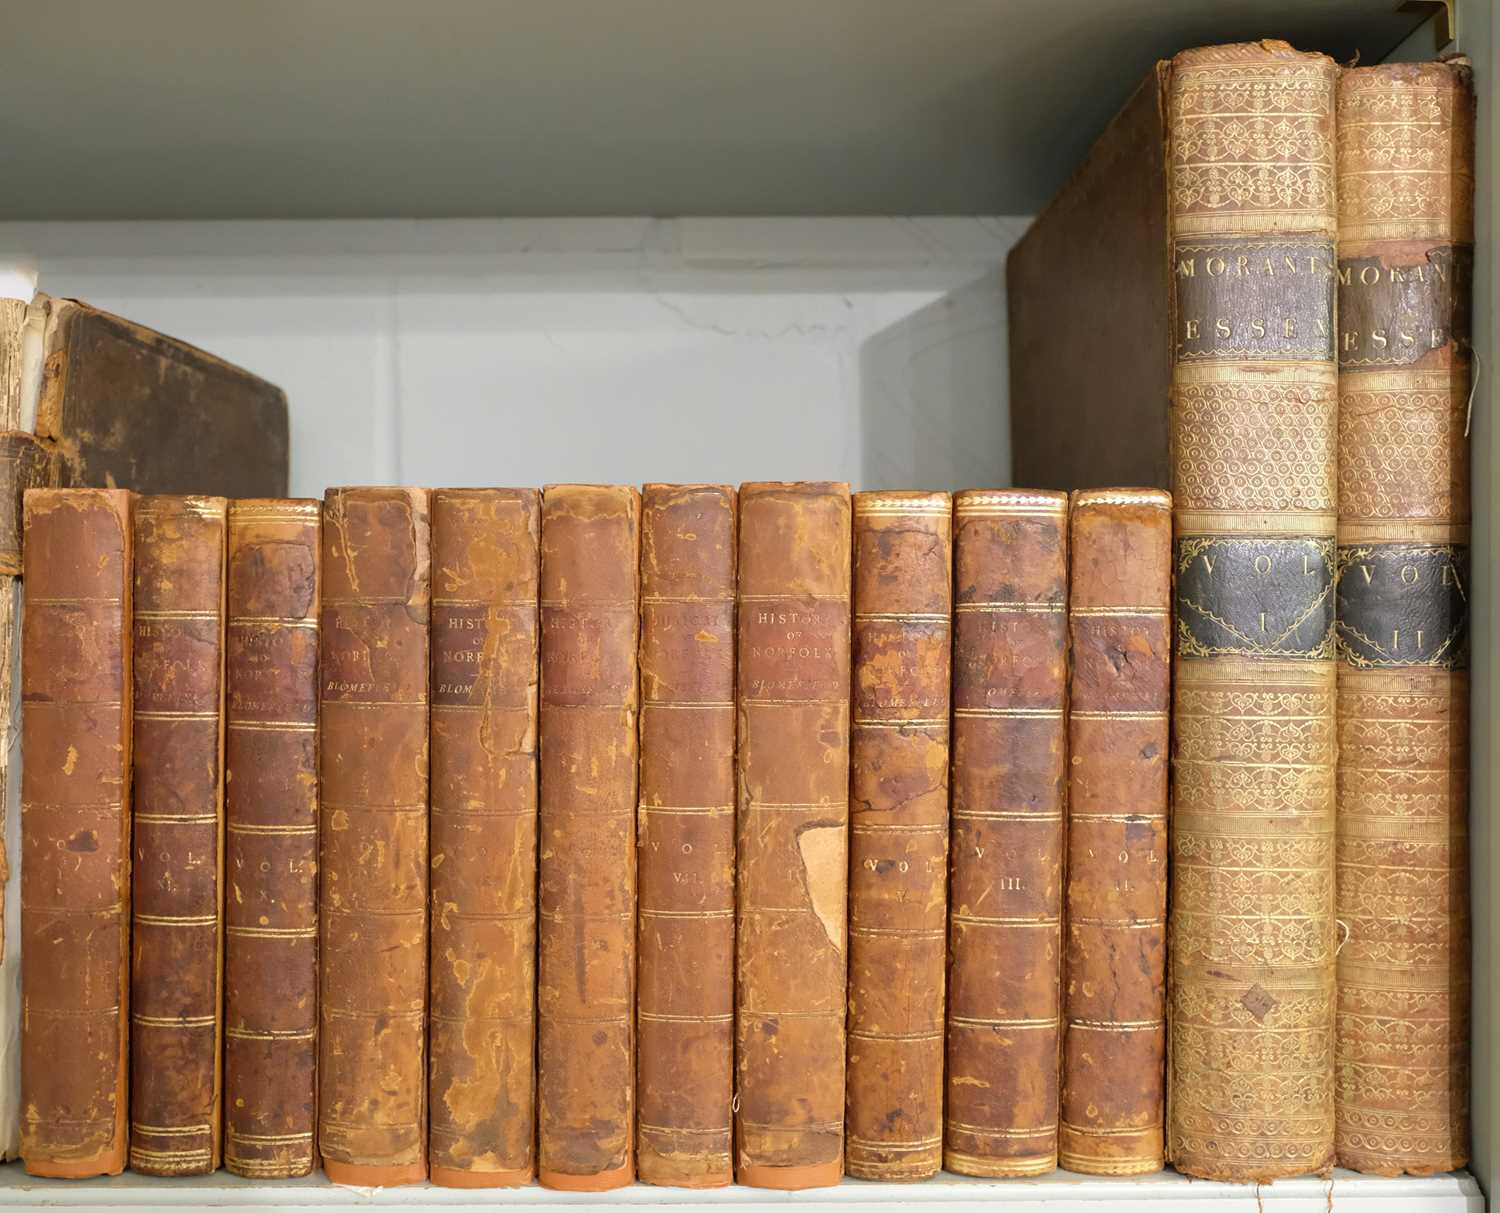 Lot 14 - Blomefield (Francis). Topographical History of the County of Norfolk, 11 vols., 1805-10